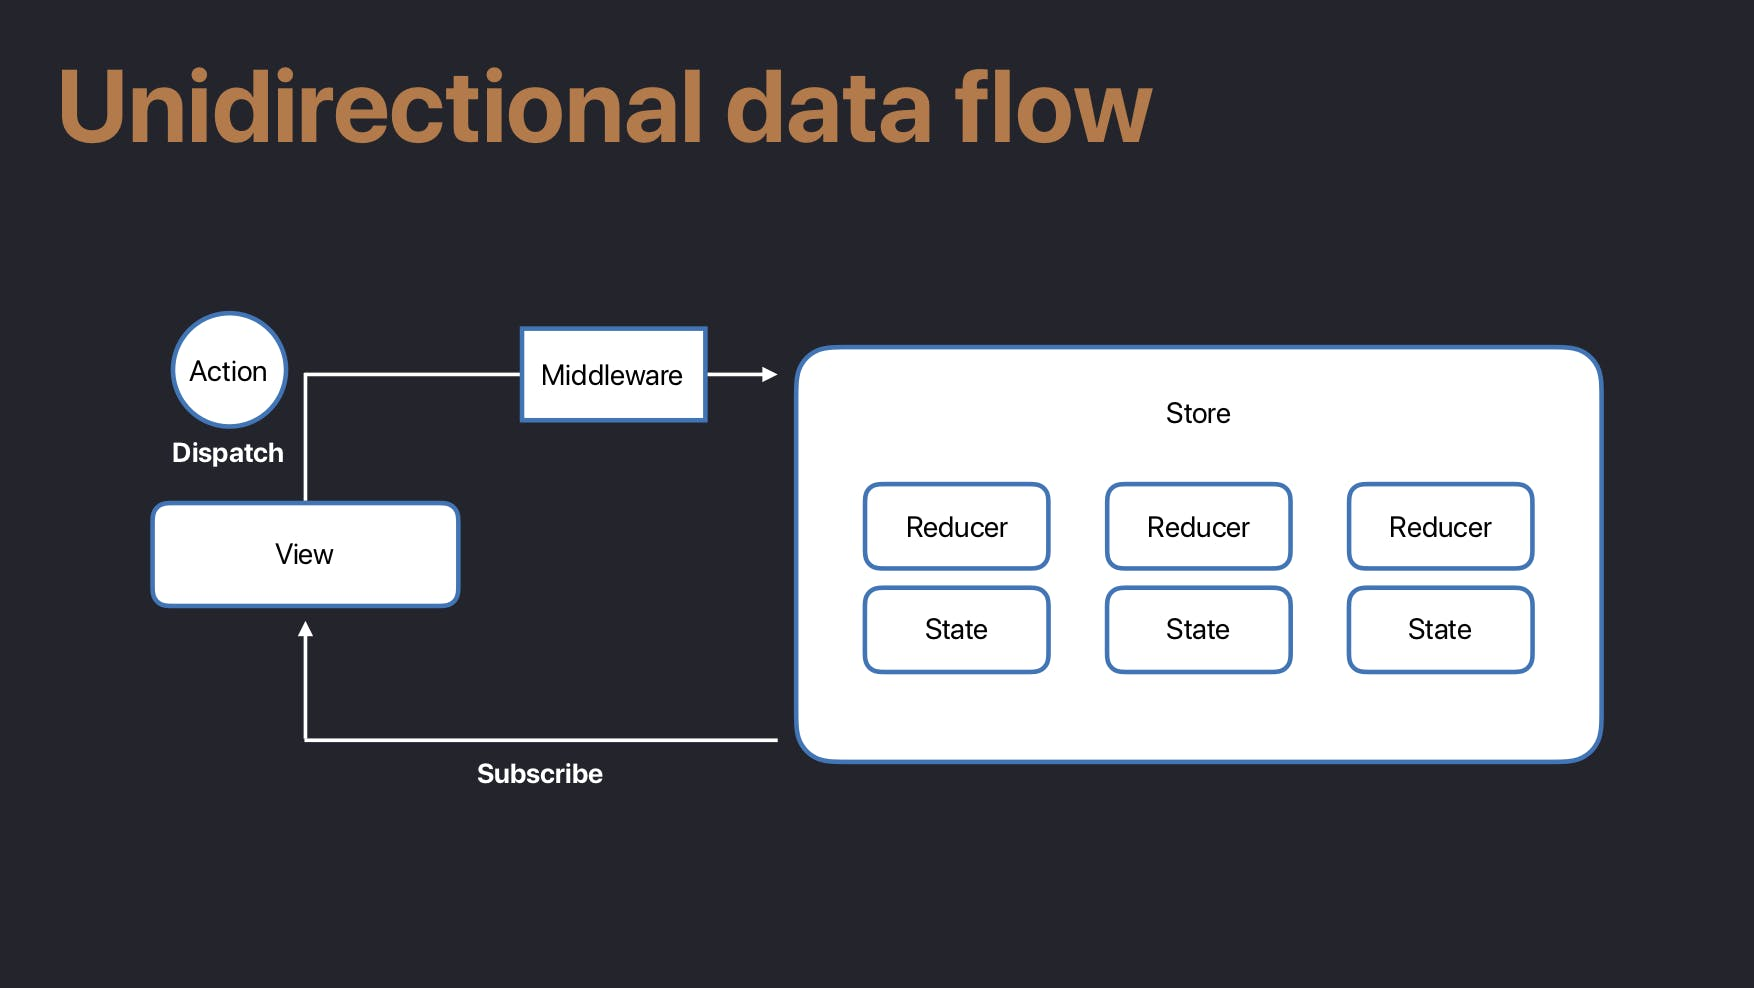 unidirectional_data_flow.png